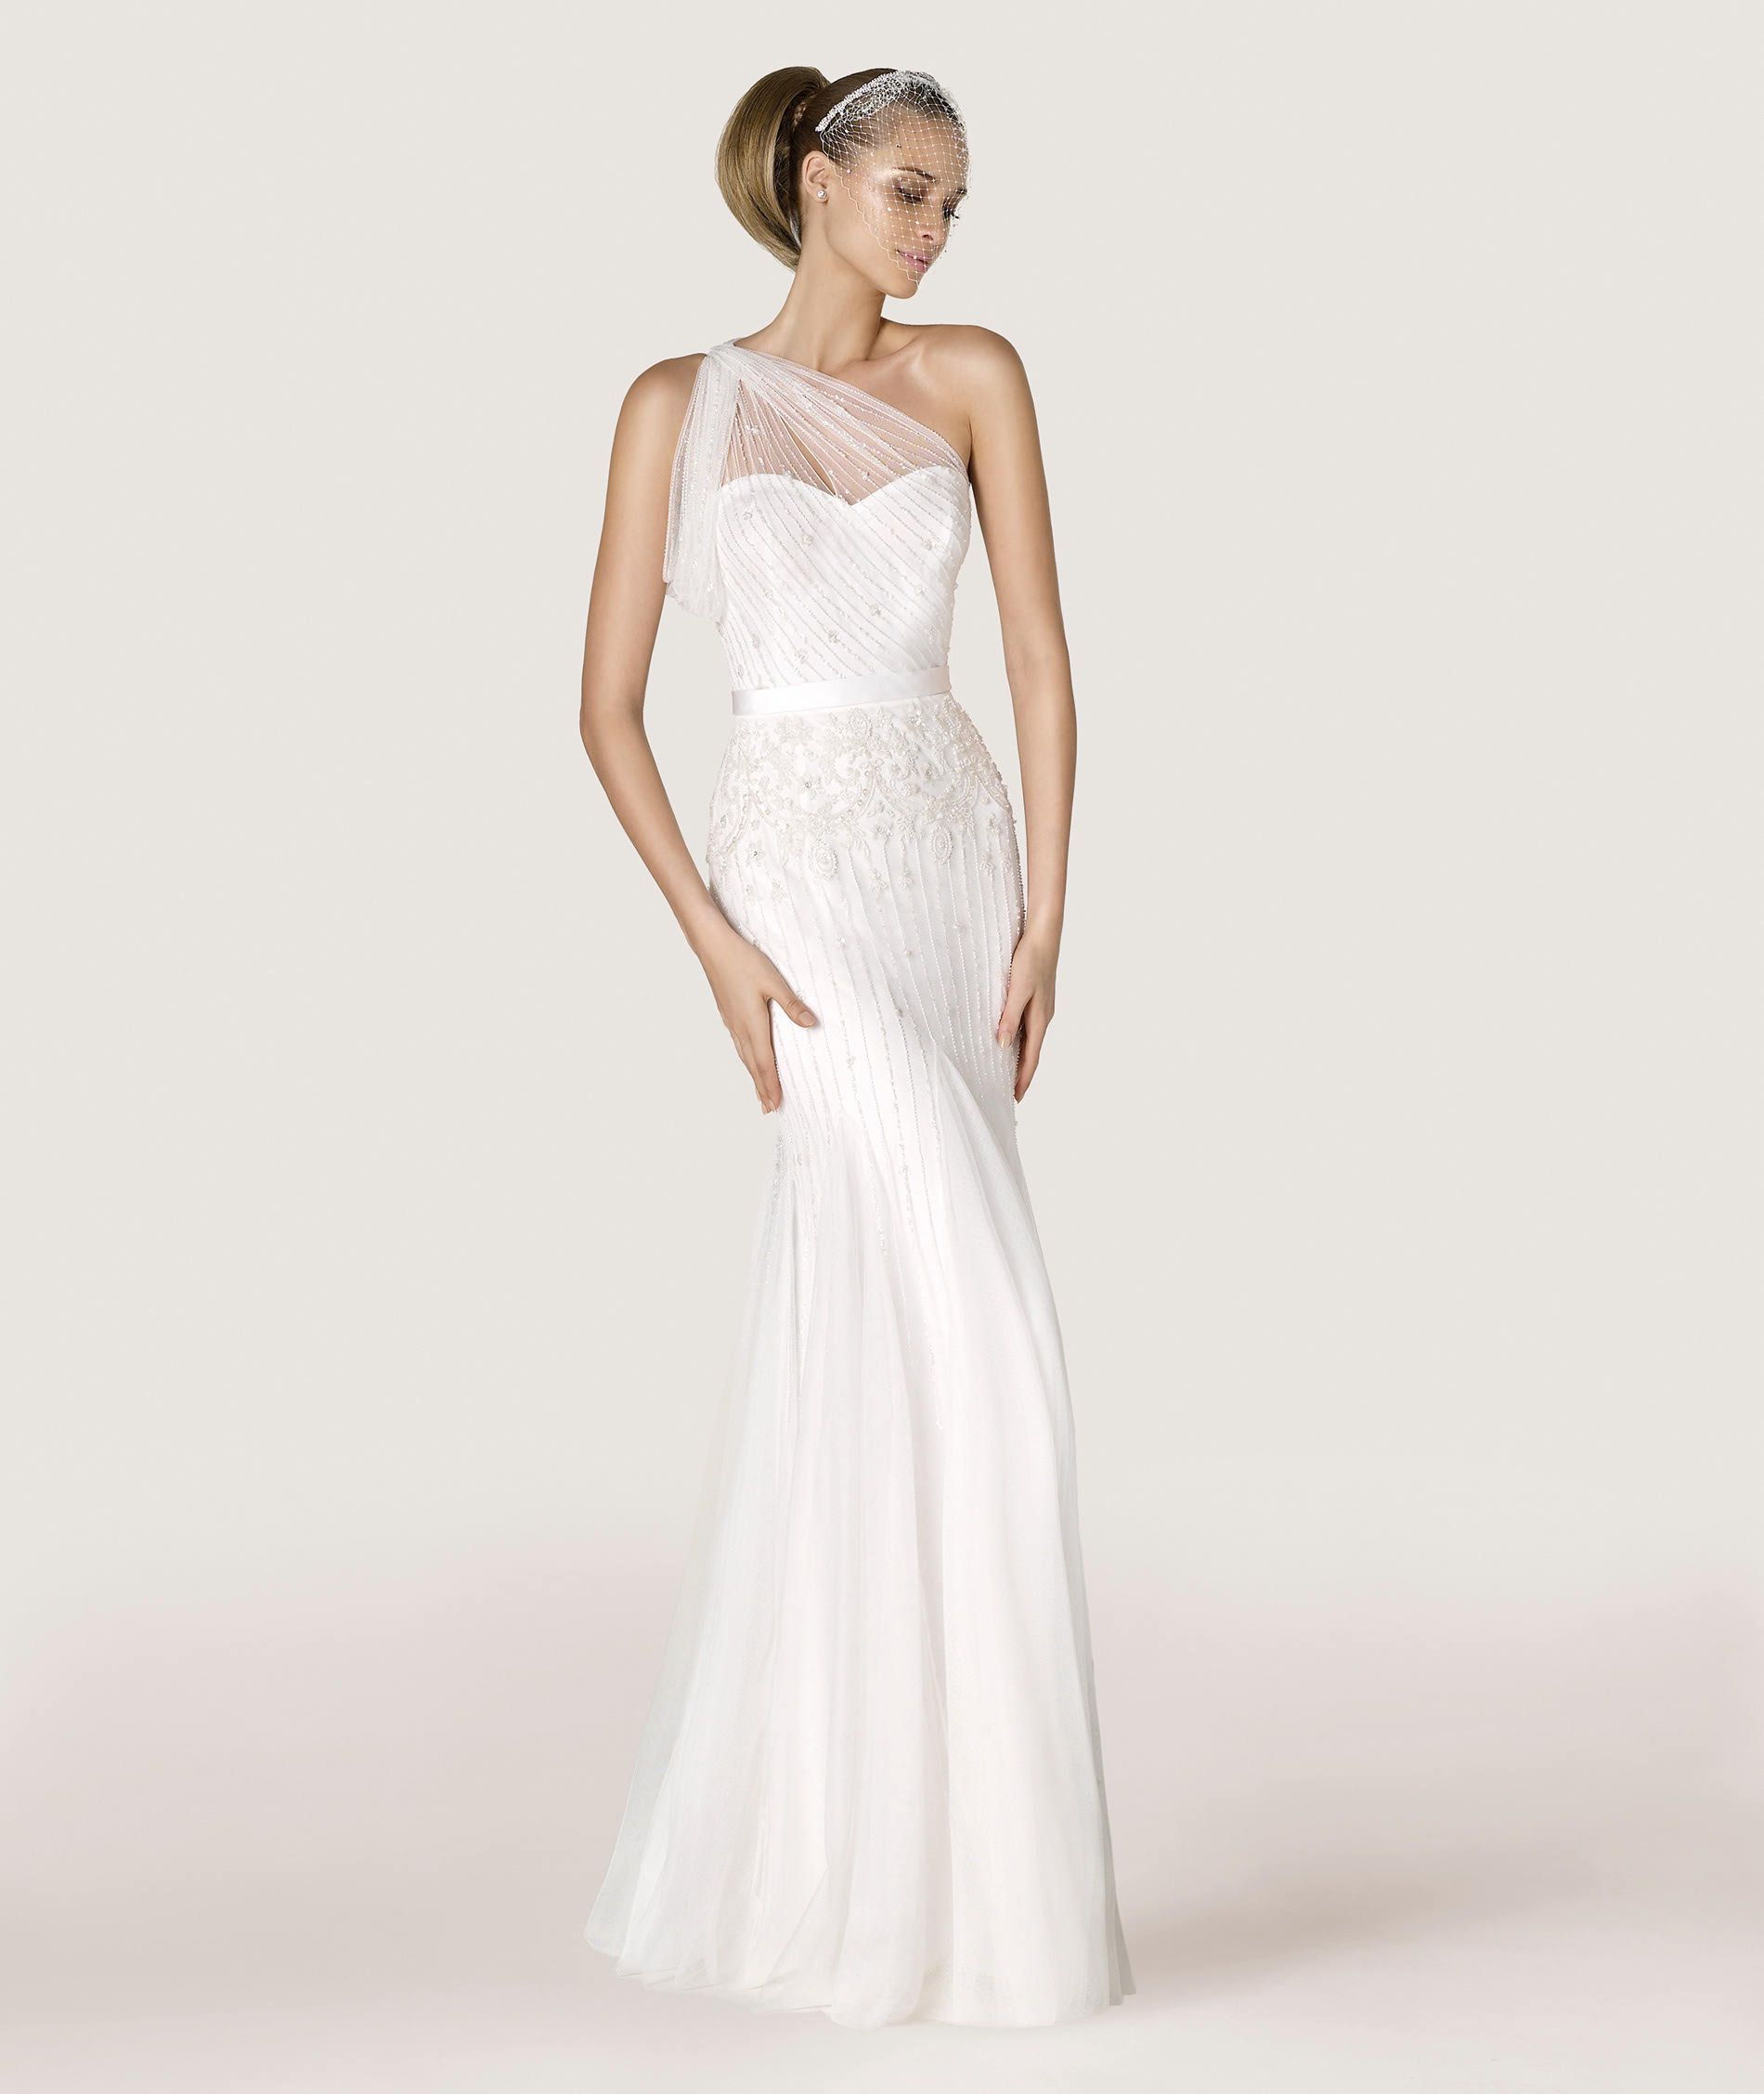 Brautkleid Antares. Kollektion CITY 2015 | Pronovias | Brautkleid ...